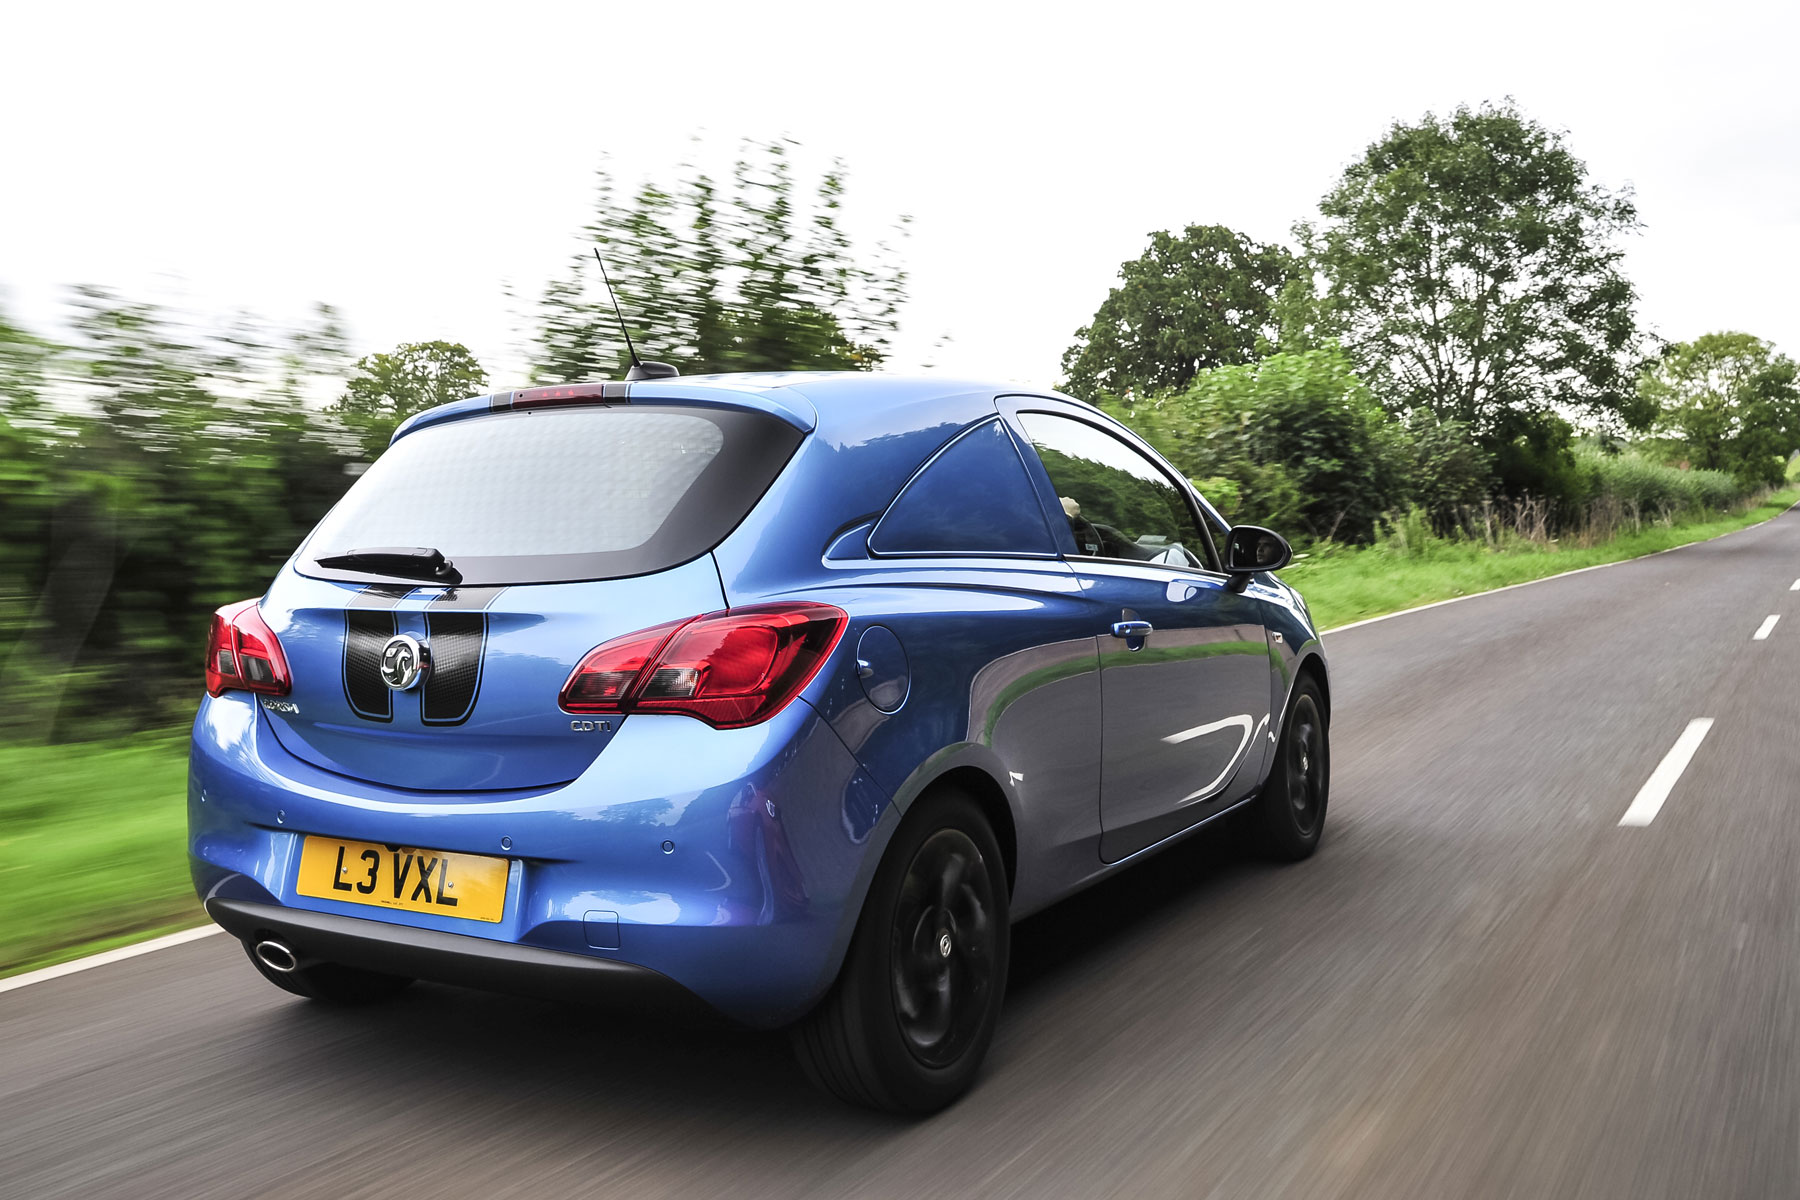 Vauxhall Corsavan Limited Edition Nav review - driving experience